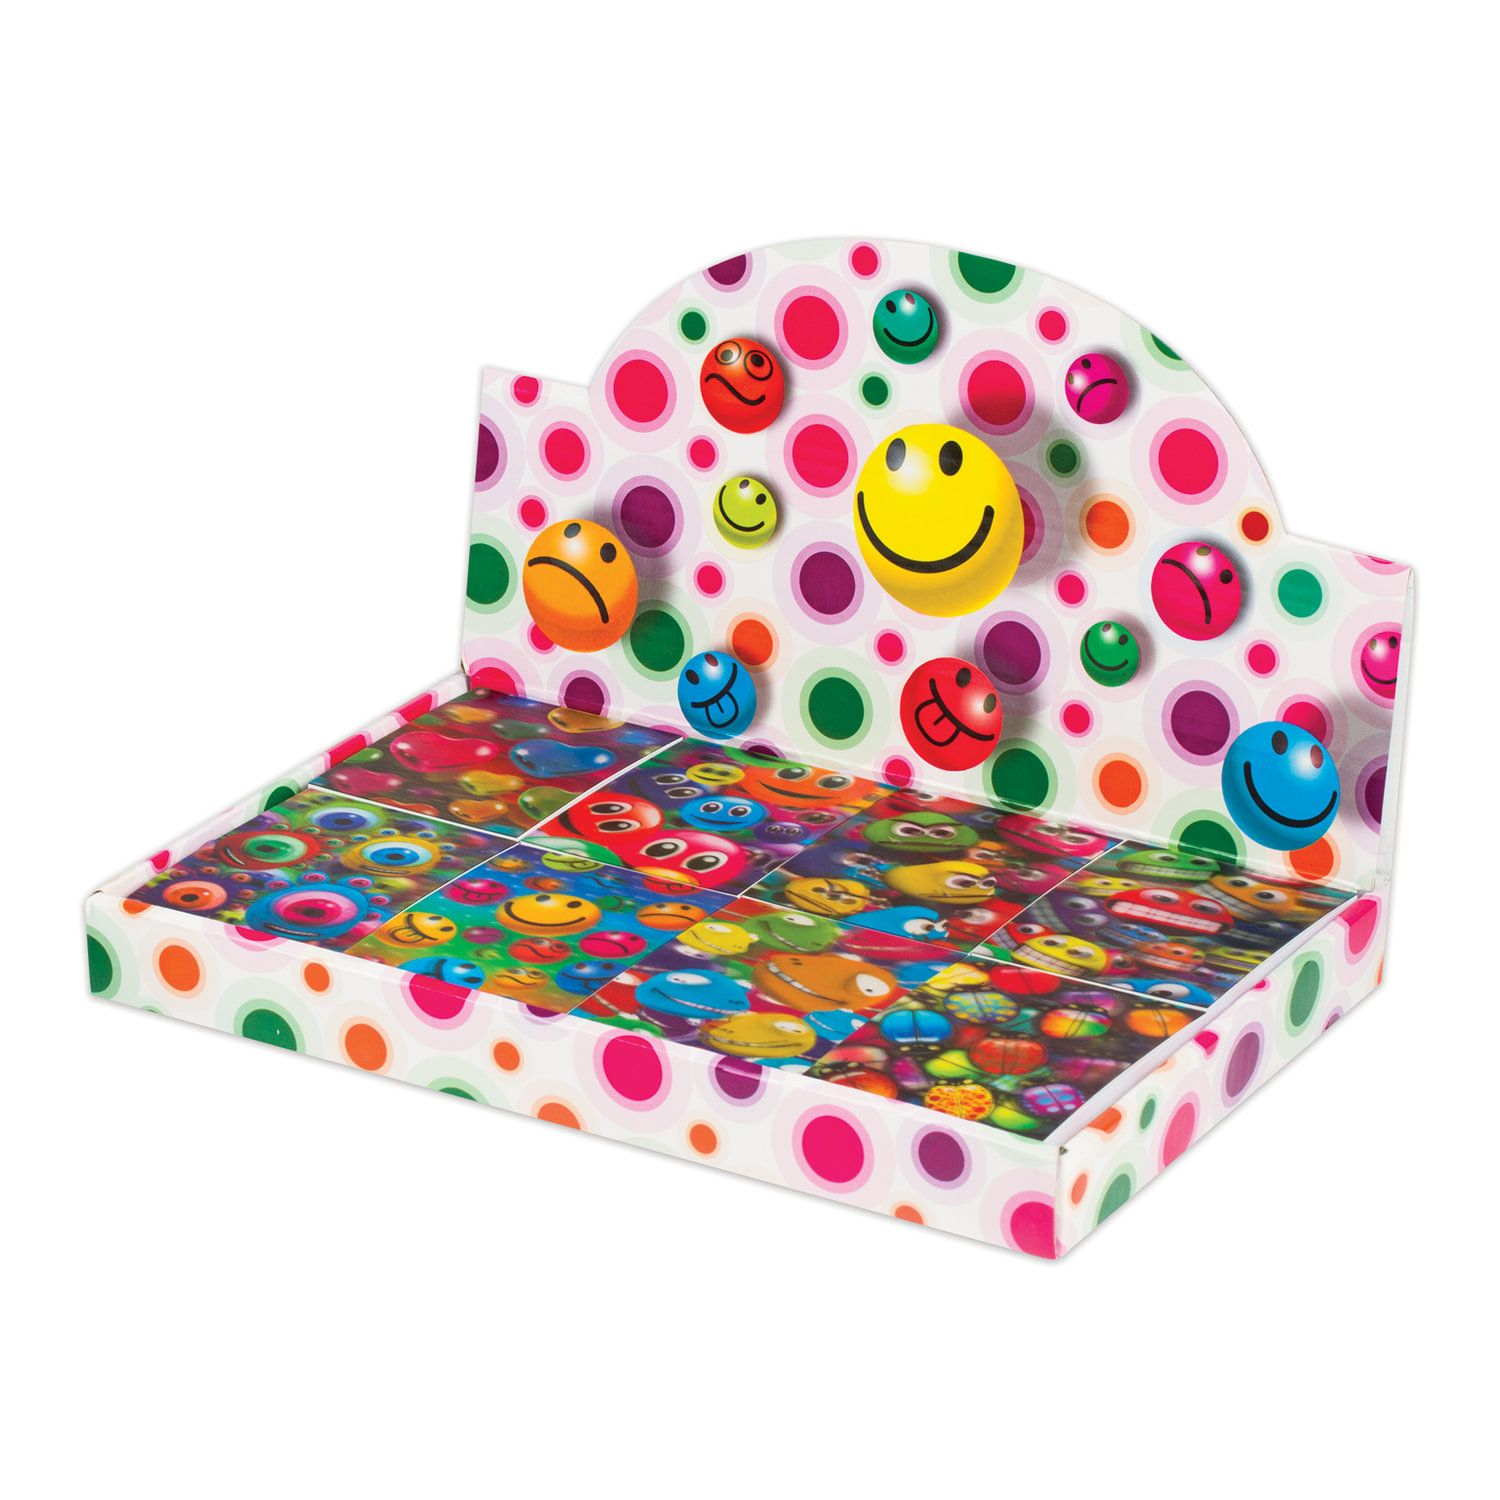 """BRAUBERG / Non-ruled notebook """"Smilies"""" SMALL FORMAT 40 sheets A7, 64x82 mm, gluing, plastic 3D cover, assorted"""